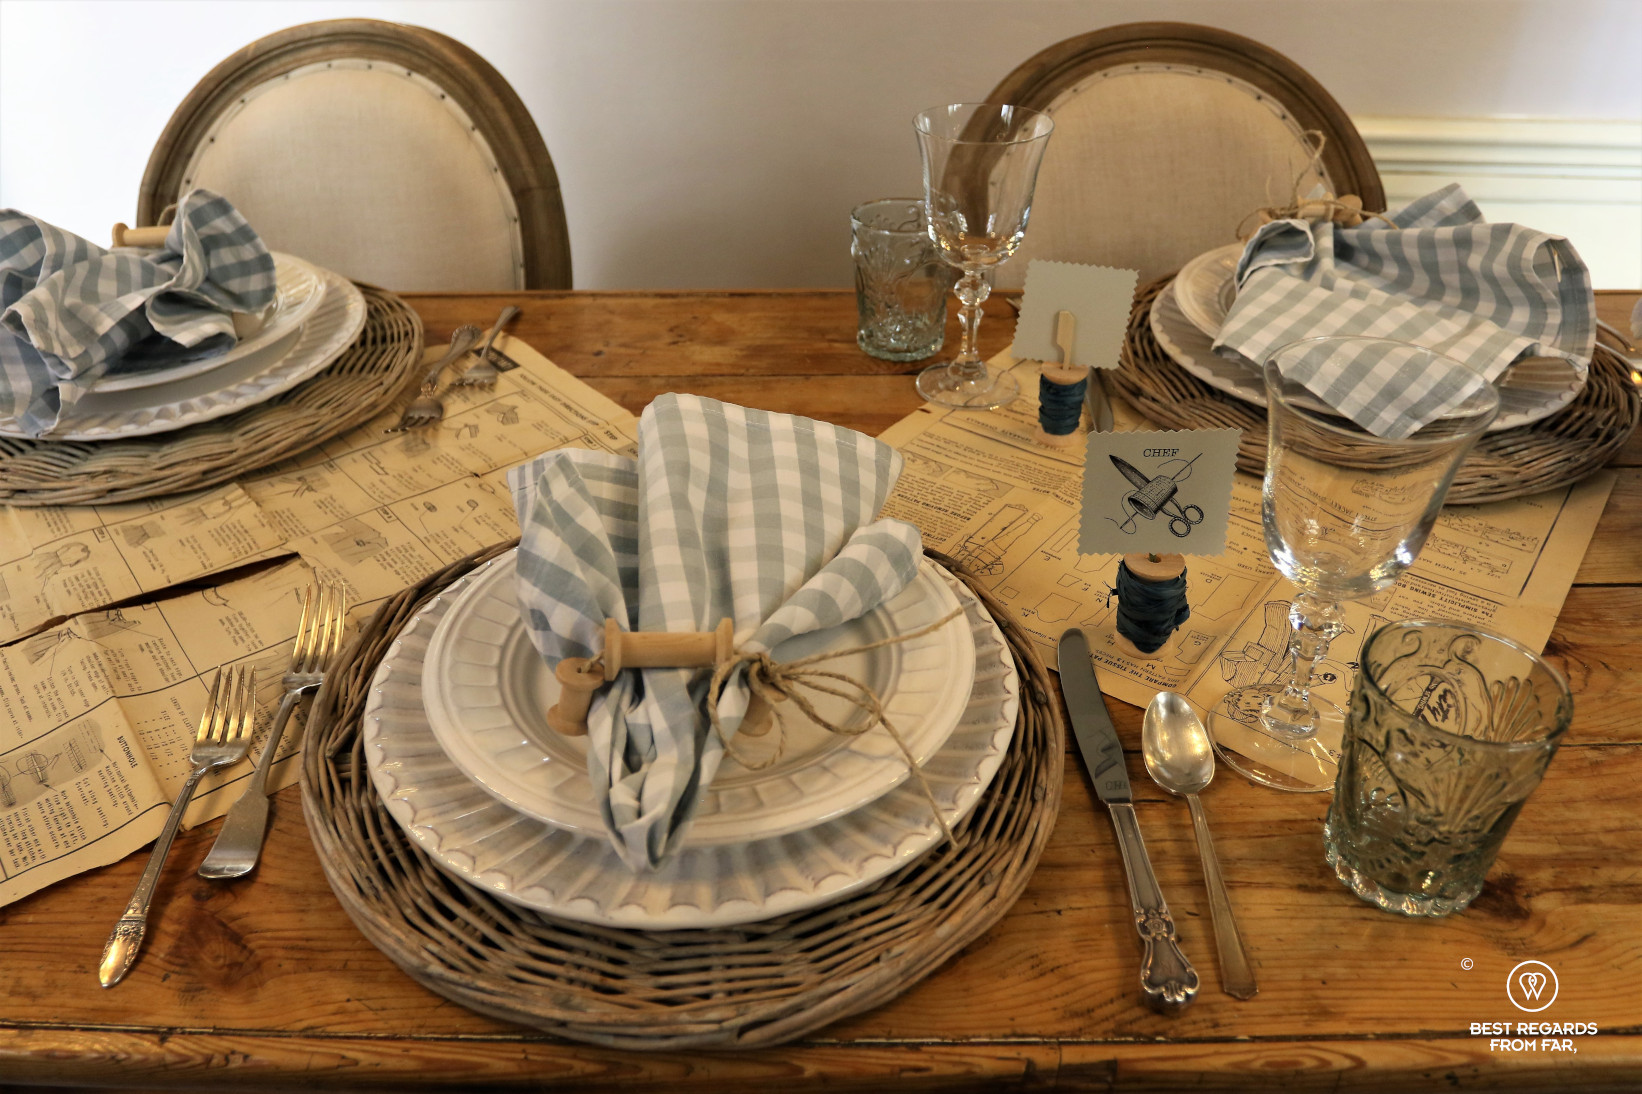 Wooden table set for three people, plates, napkins and glasses.